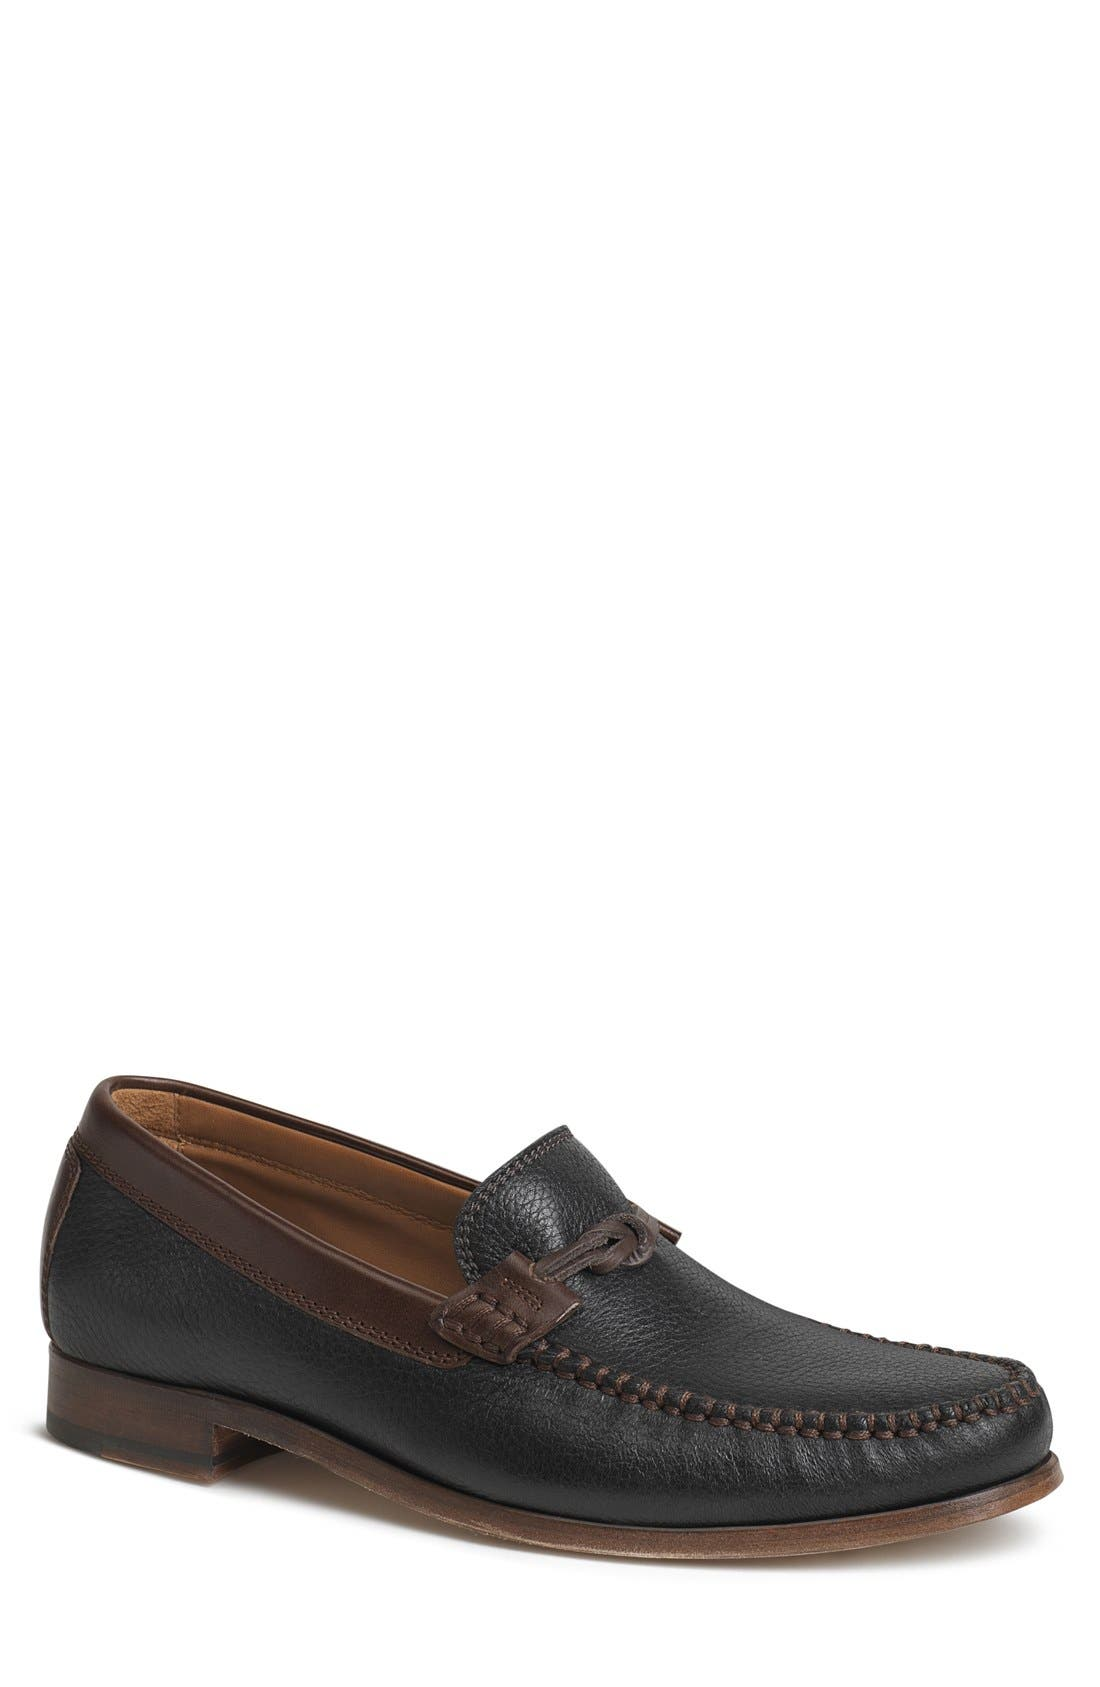 'Sawyer' Loafer,                             Main thumbnail 1, color,                             Black